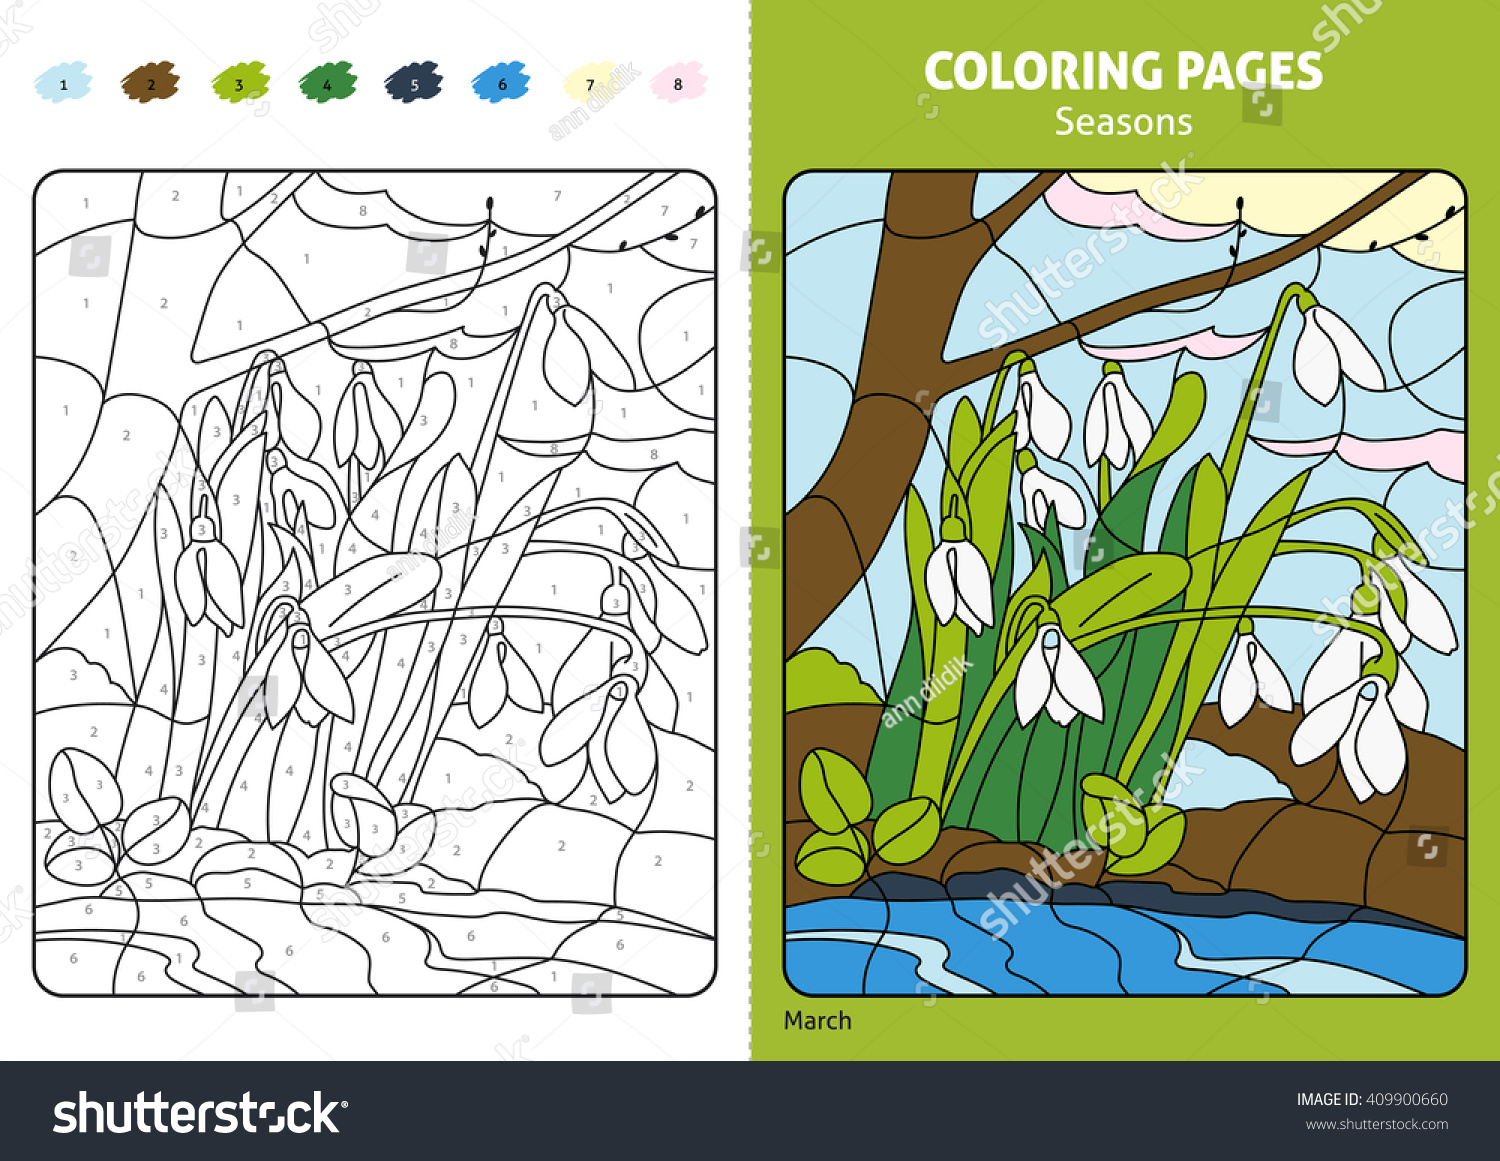 Seasons Coloring Page Kids Printable Design Coloring Stock Vector ...